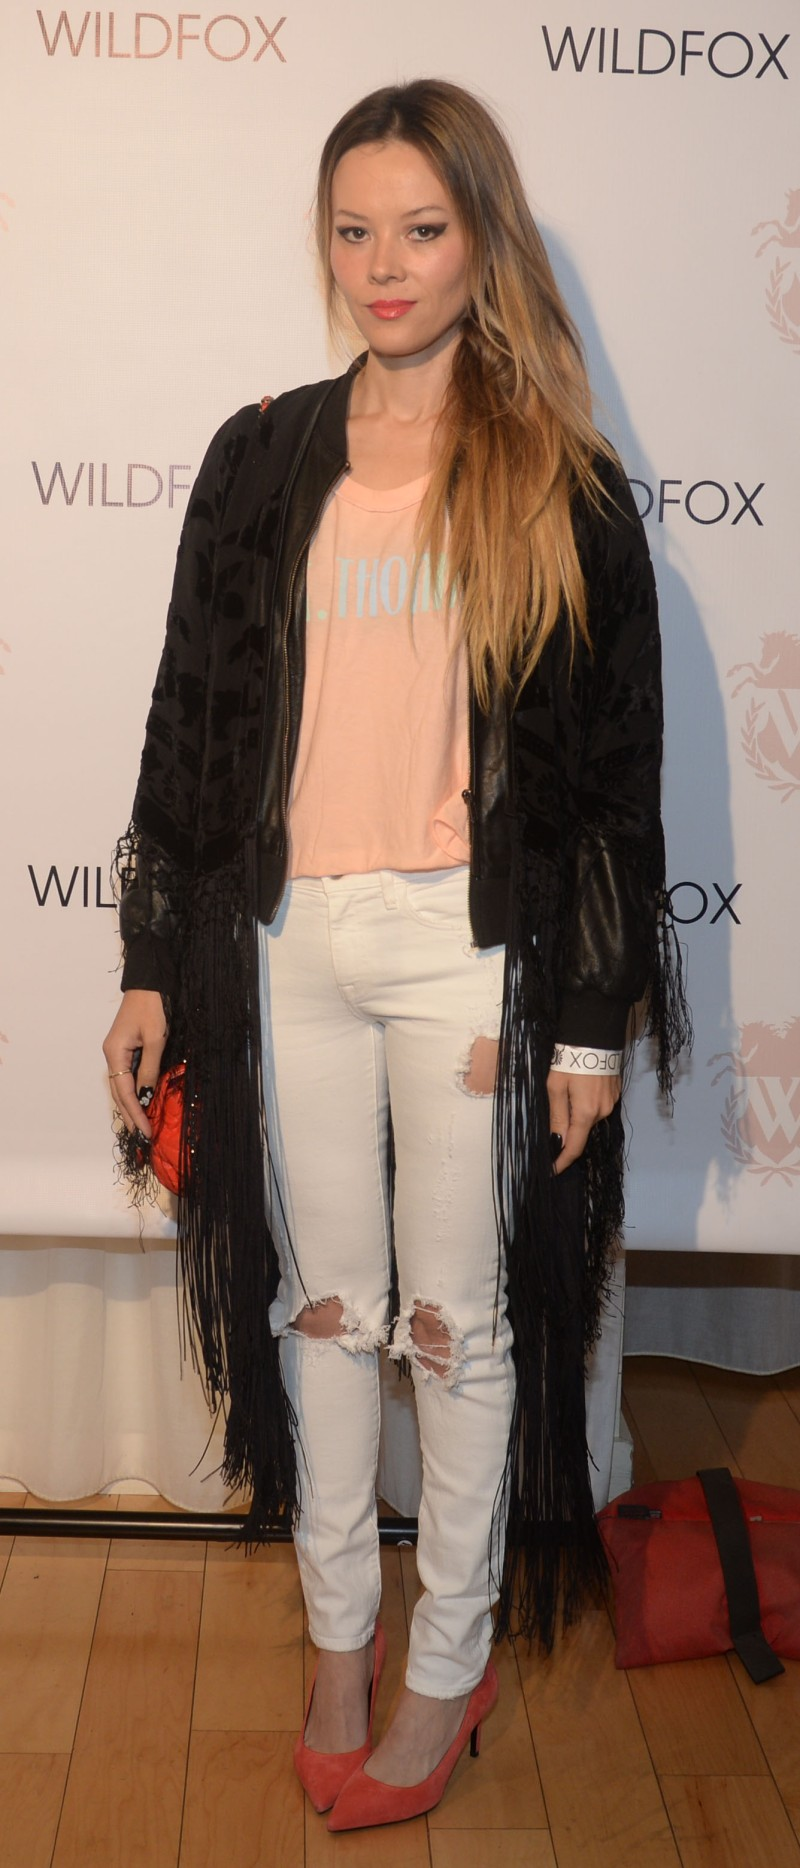 Wildfox Spring 2014 Launch Party Michelle Siwy